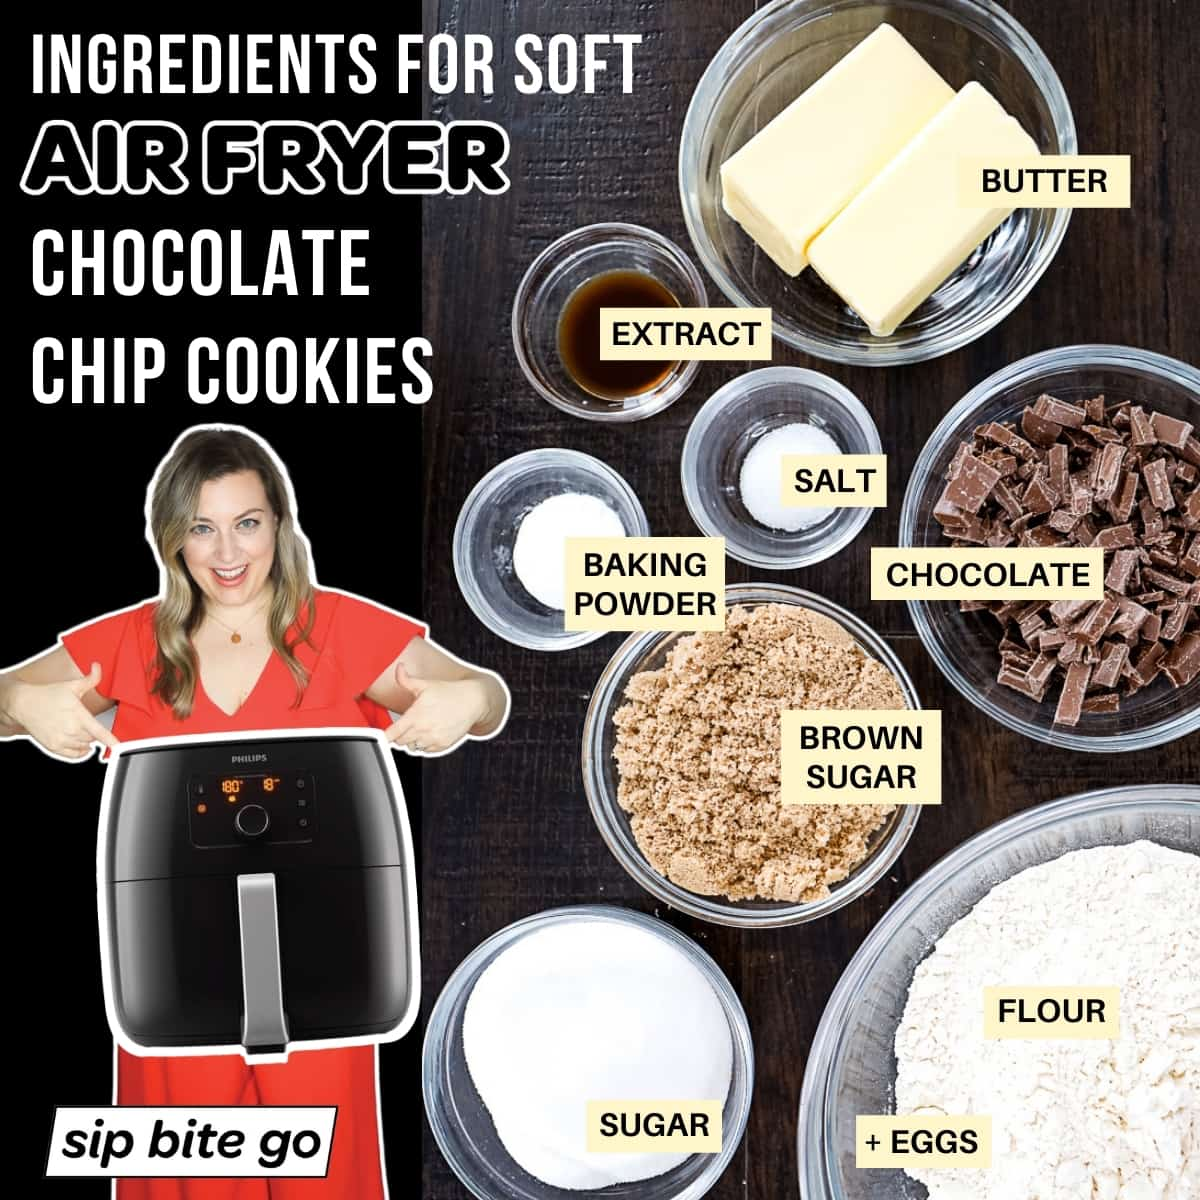 Chart of captions and ingredients for air fryer chocolate chip cookie dough recipe.